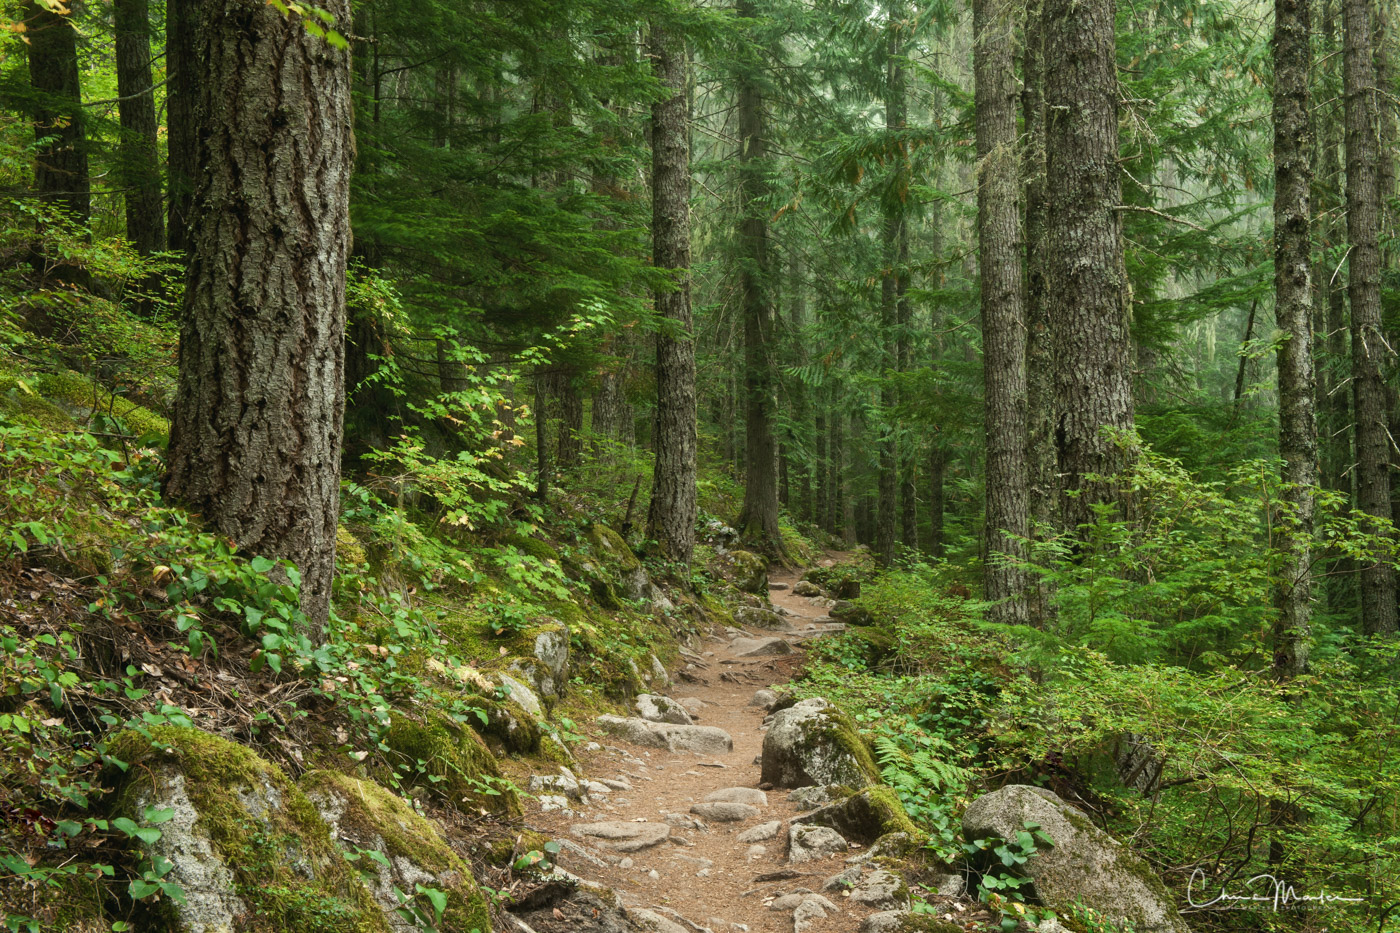 walk in the woods, forest path, Pacific Northwest forest, where does this path lead, Snoqualmie forest, photo